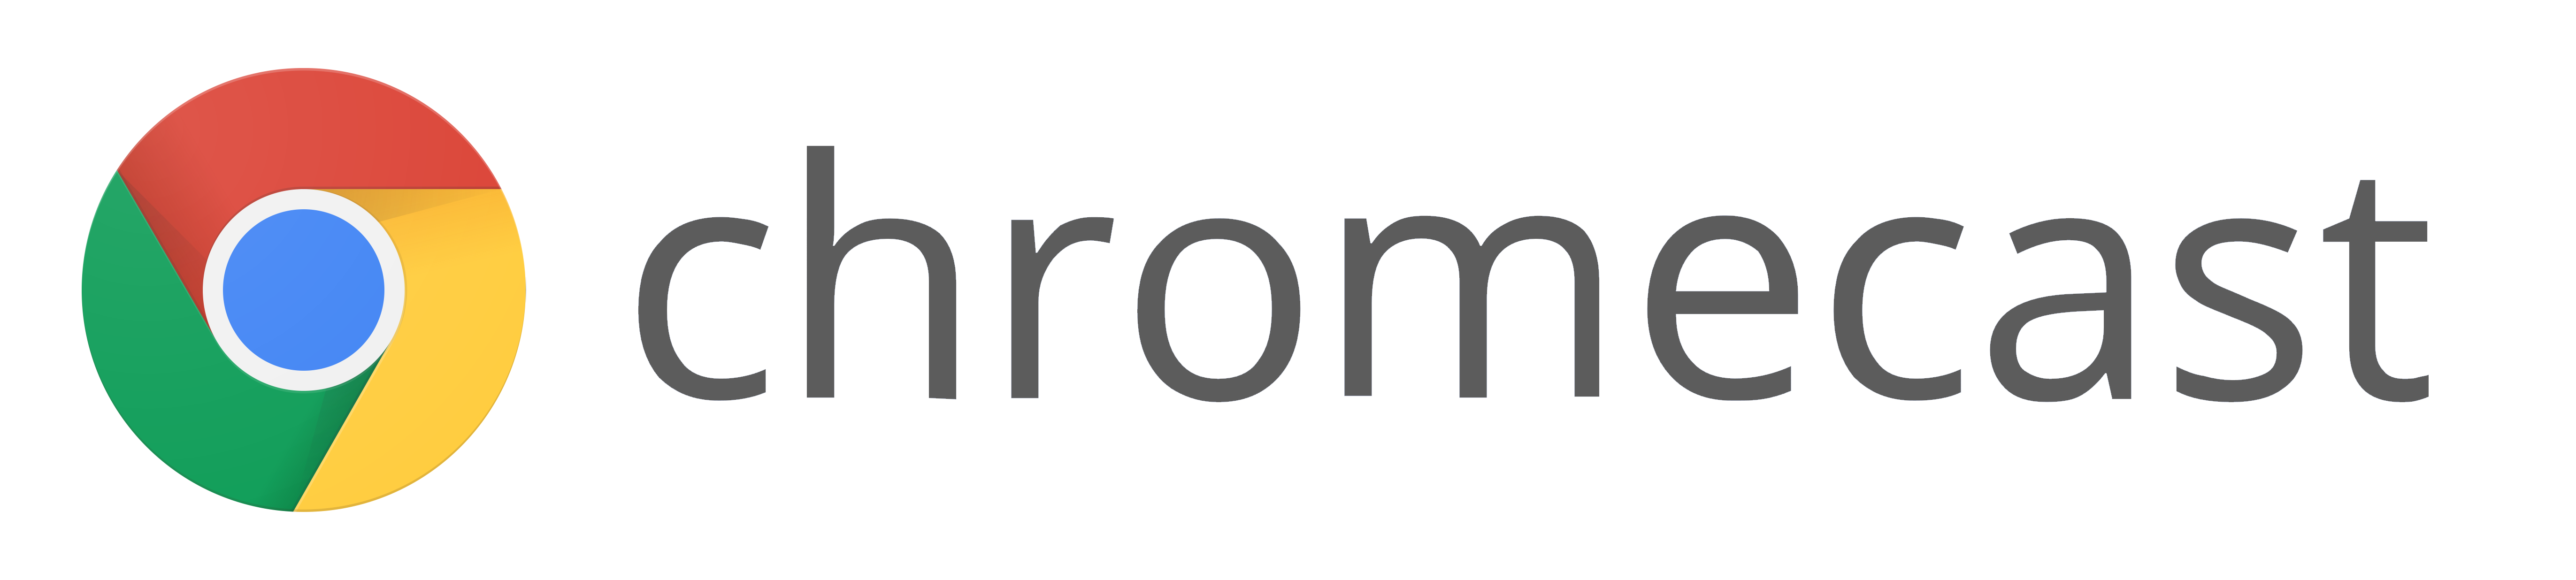 Google Chromecast logo for video streaming to devices